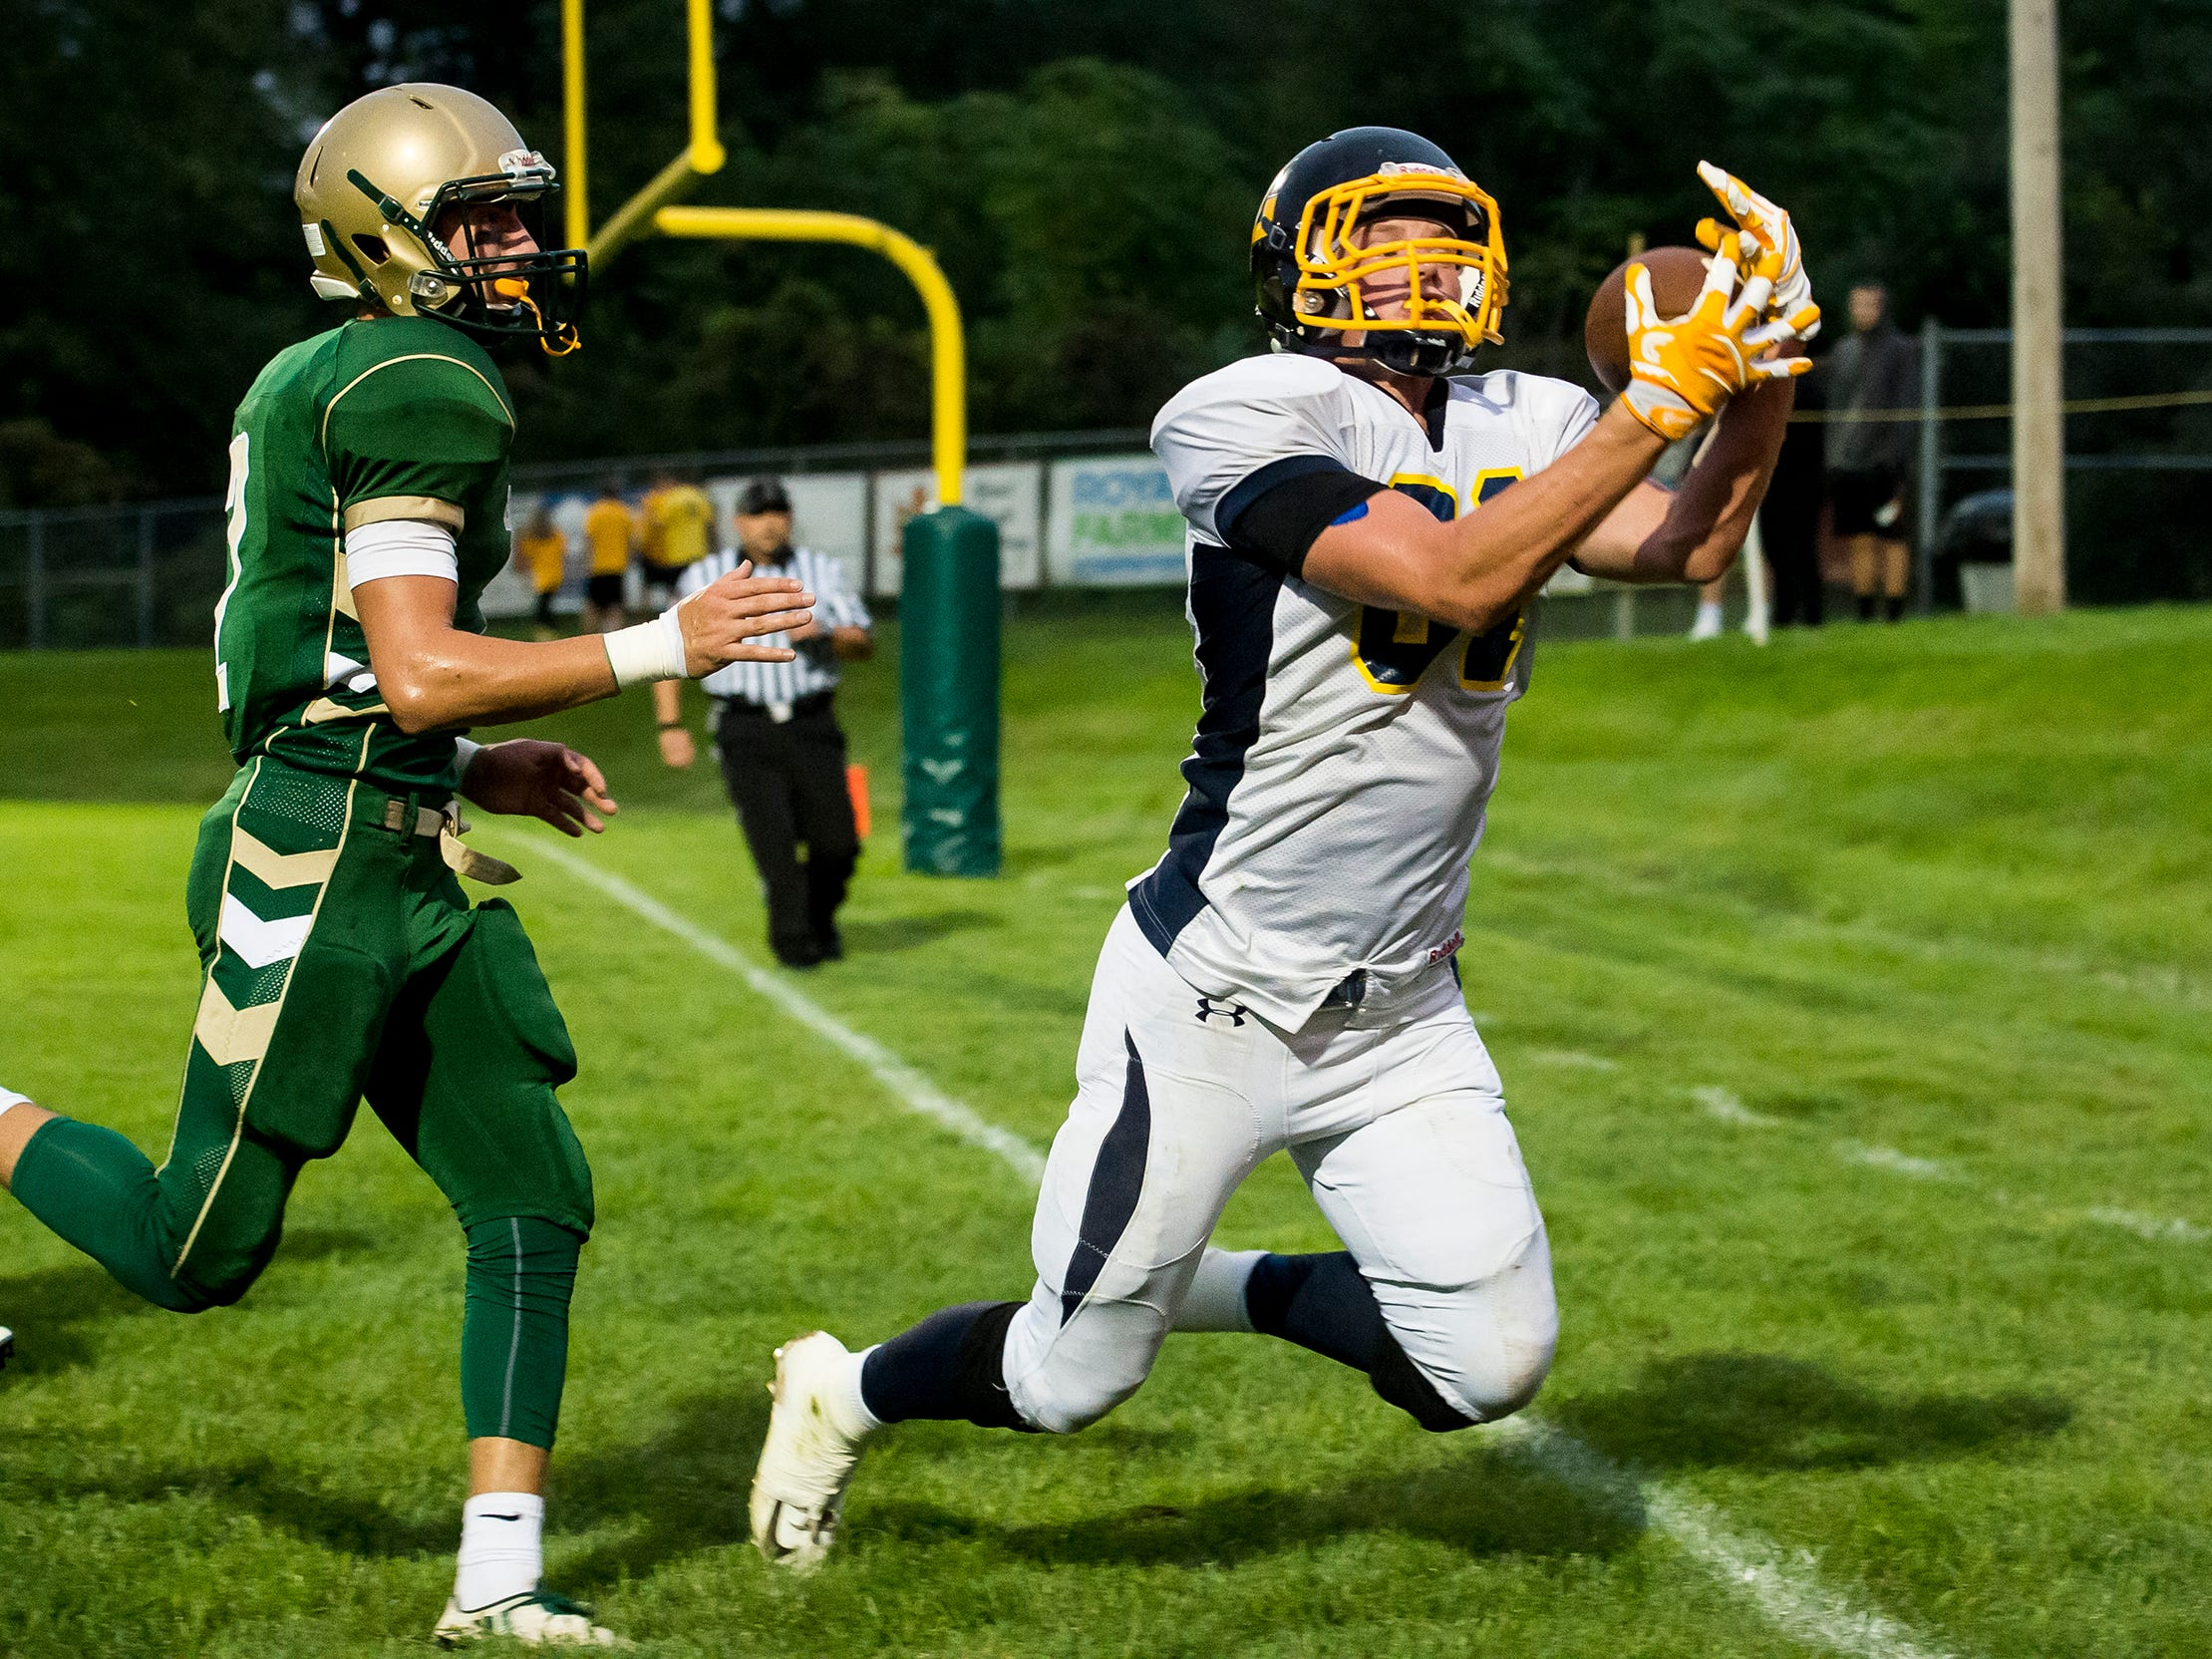 Littlestown's Brady McClintock hauls in a catch in the end zone during play against York Catholic on Friday, September 14, 2018. The catch was called incomplete as McClintock came down out of bounds.